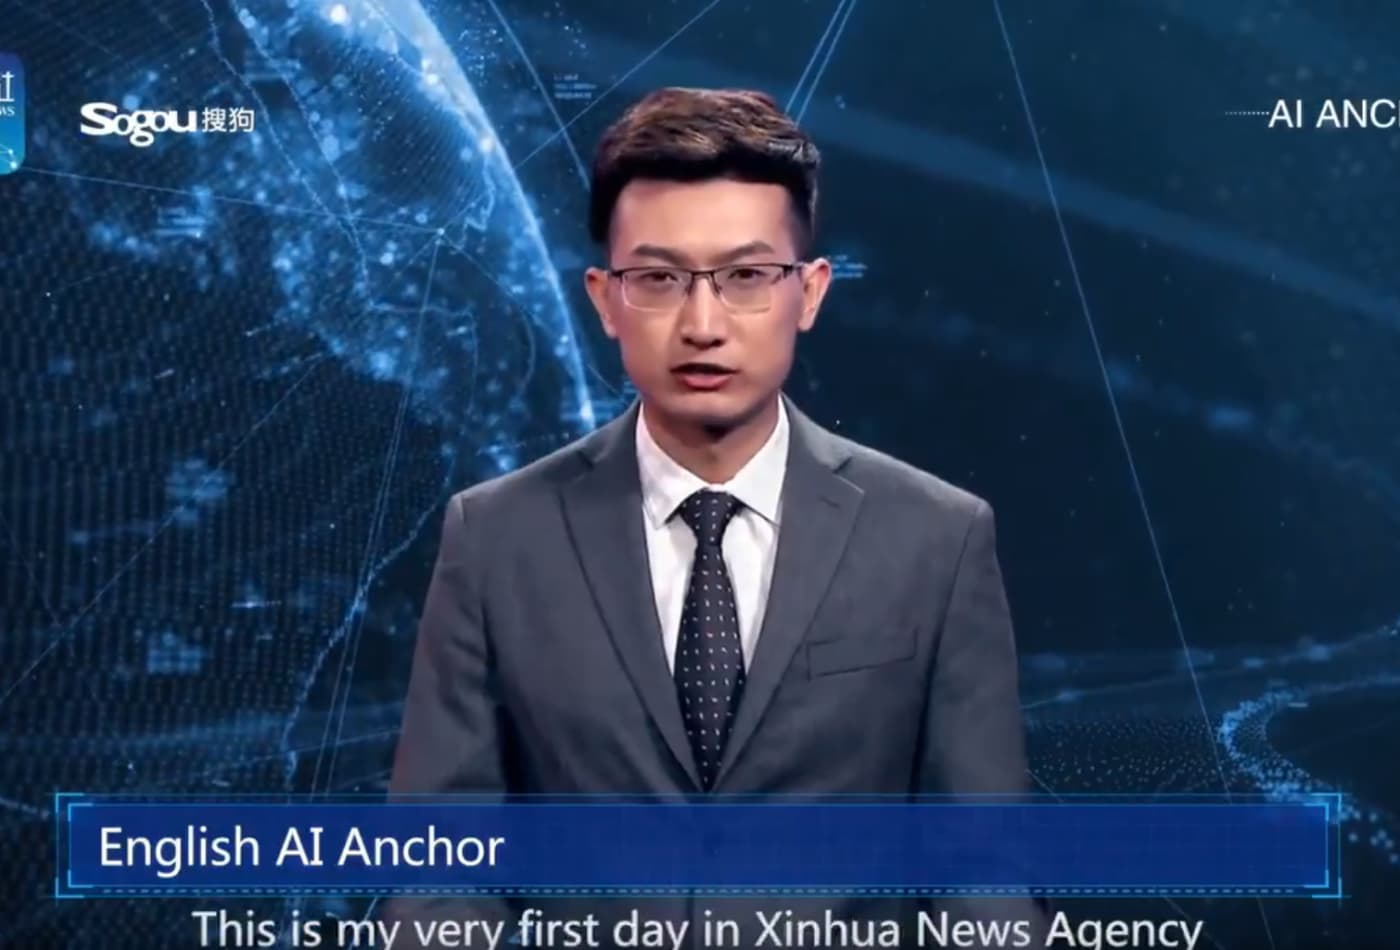 Experts cast doubt on whether China's news anchor is really A I